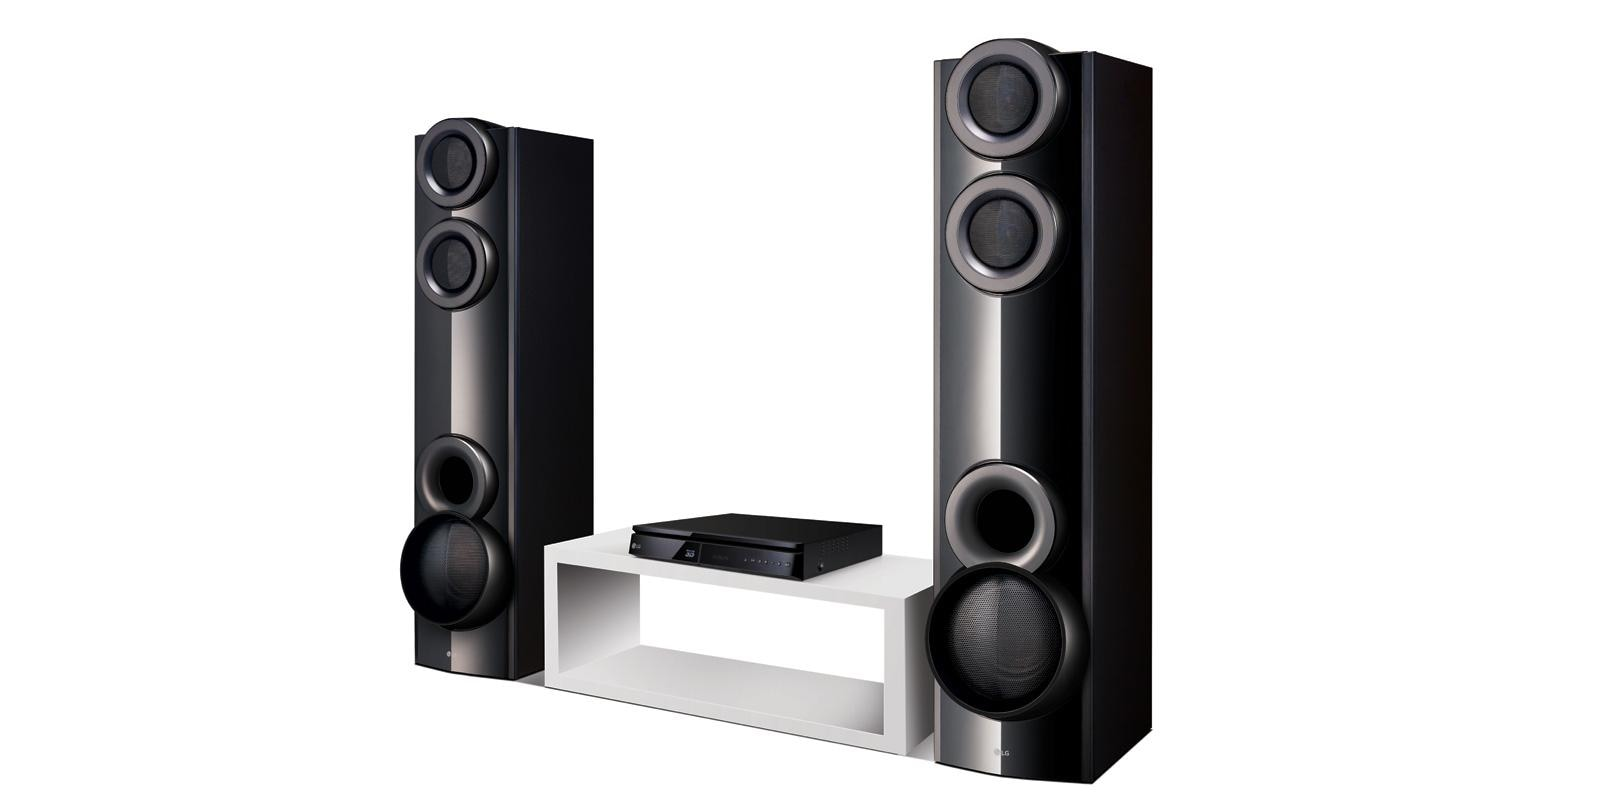 LG LHB675: 3D-Capable 1000W 4.2ch Blu-ray Disc™ Home Theater System | LG USA